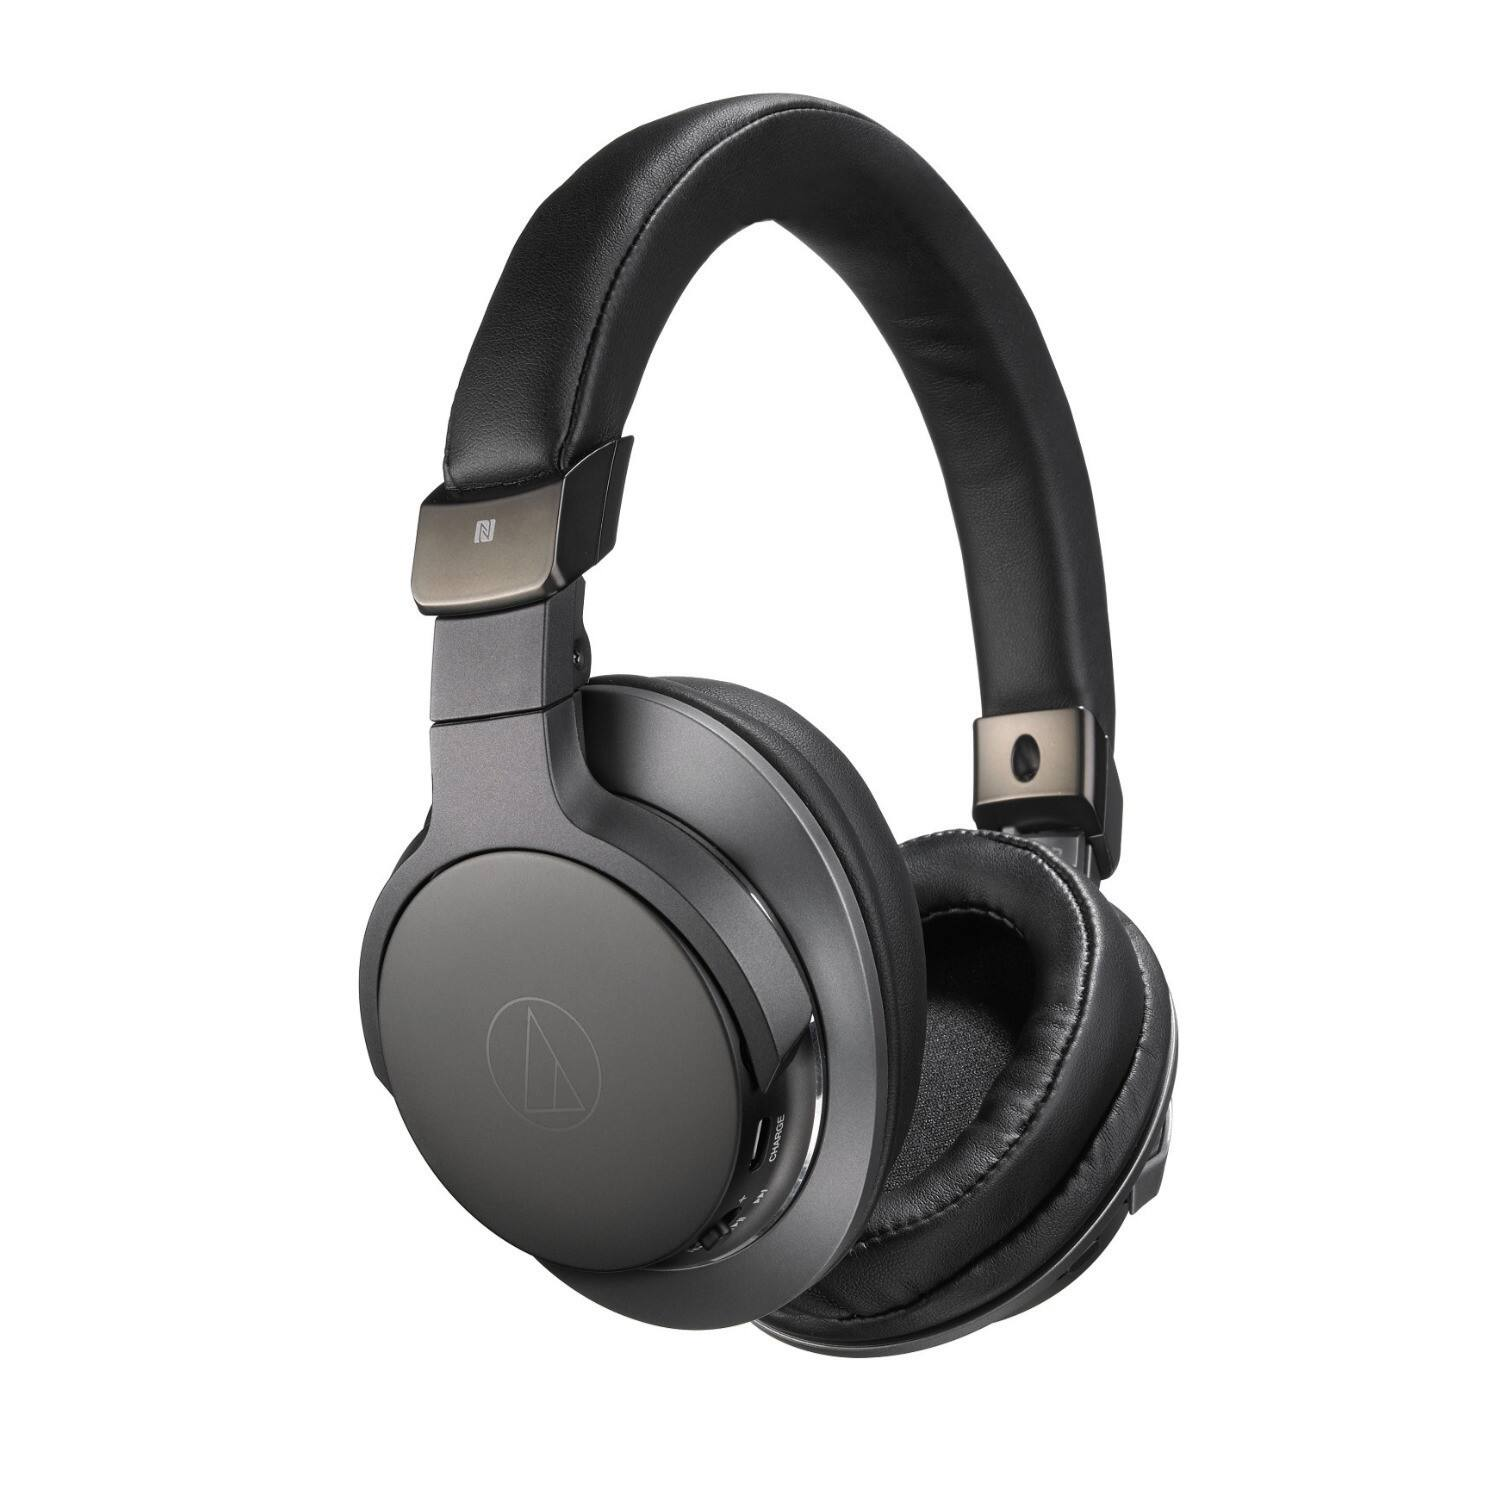 Audio-Technica ATH-SR6BTBK Bluetooth Over-Ear Headphones (Refurb) $69 + Free Shipping